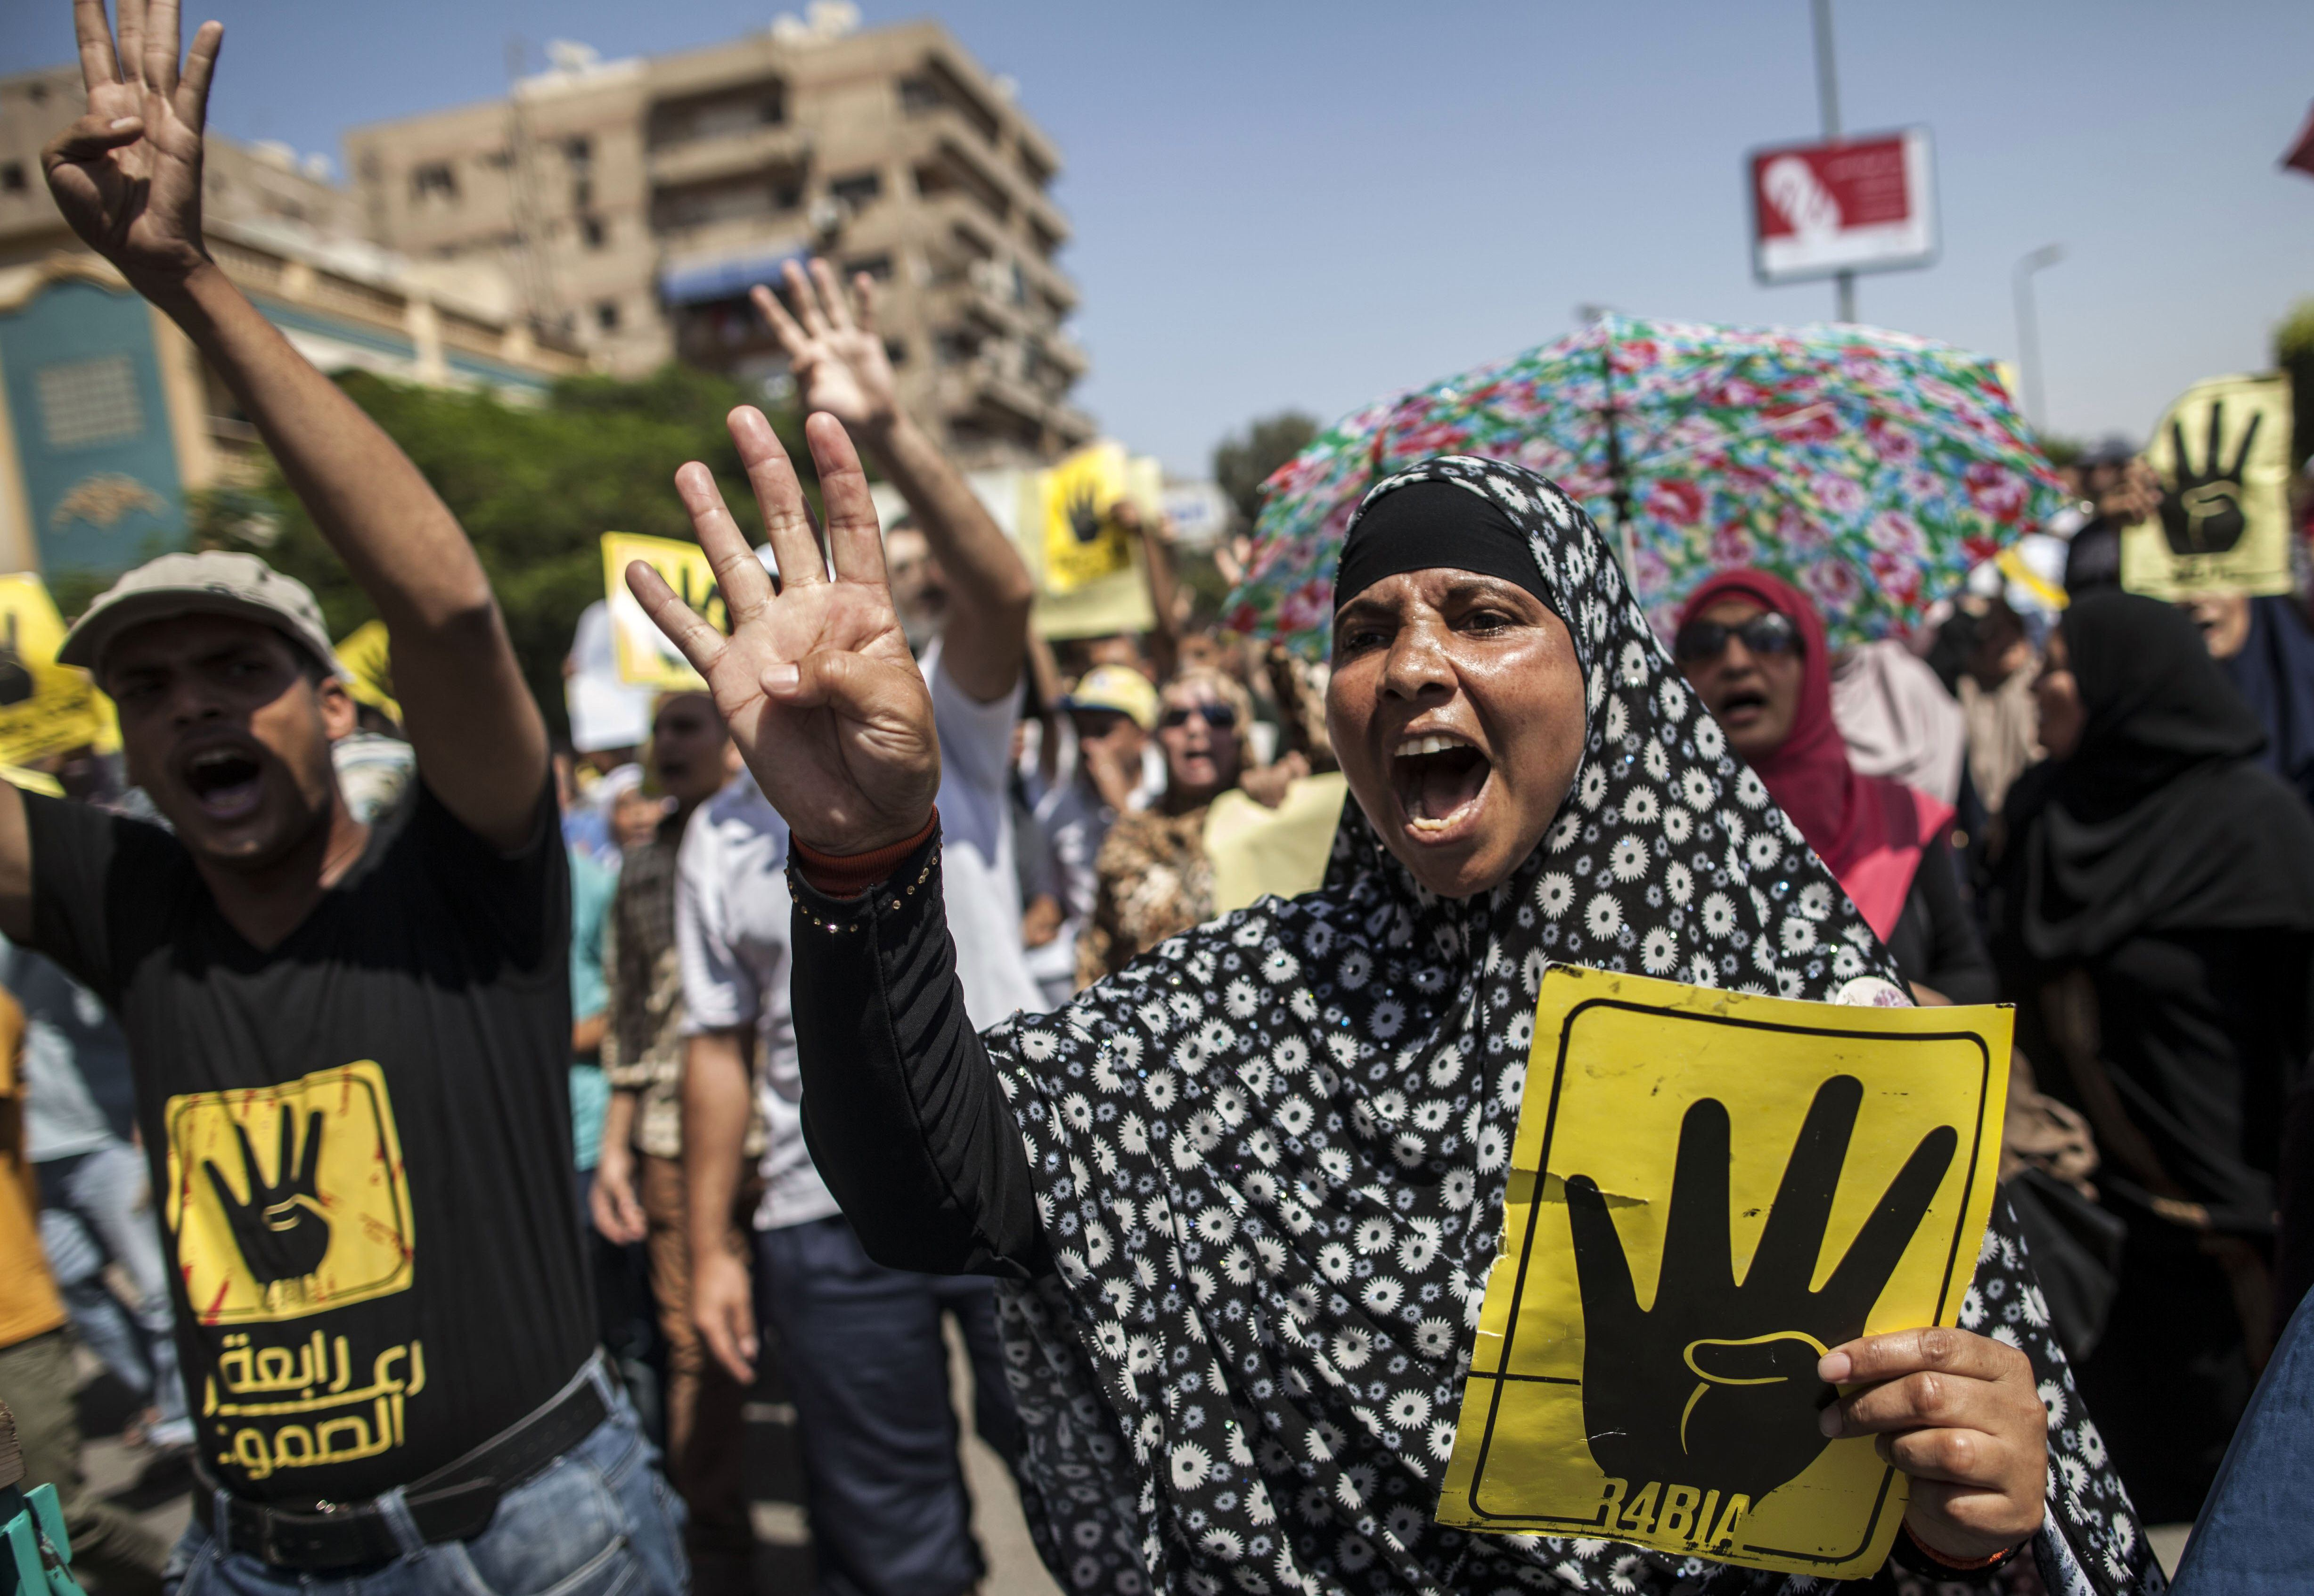 Supporters of ousted Egyptian president Mohamed Morsi raise up posters with the four finger symbol during a demonstration against the military backed government in the Egyptian capital Cairo, on 13 September 2013  (AFP/ file photo)